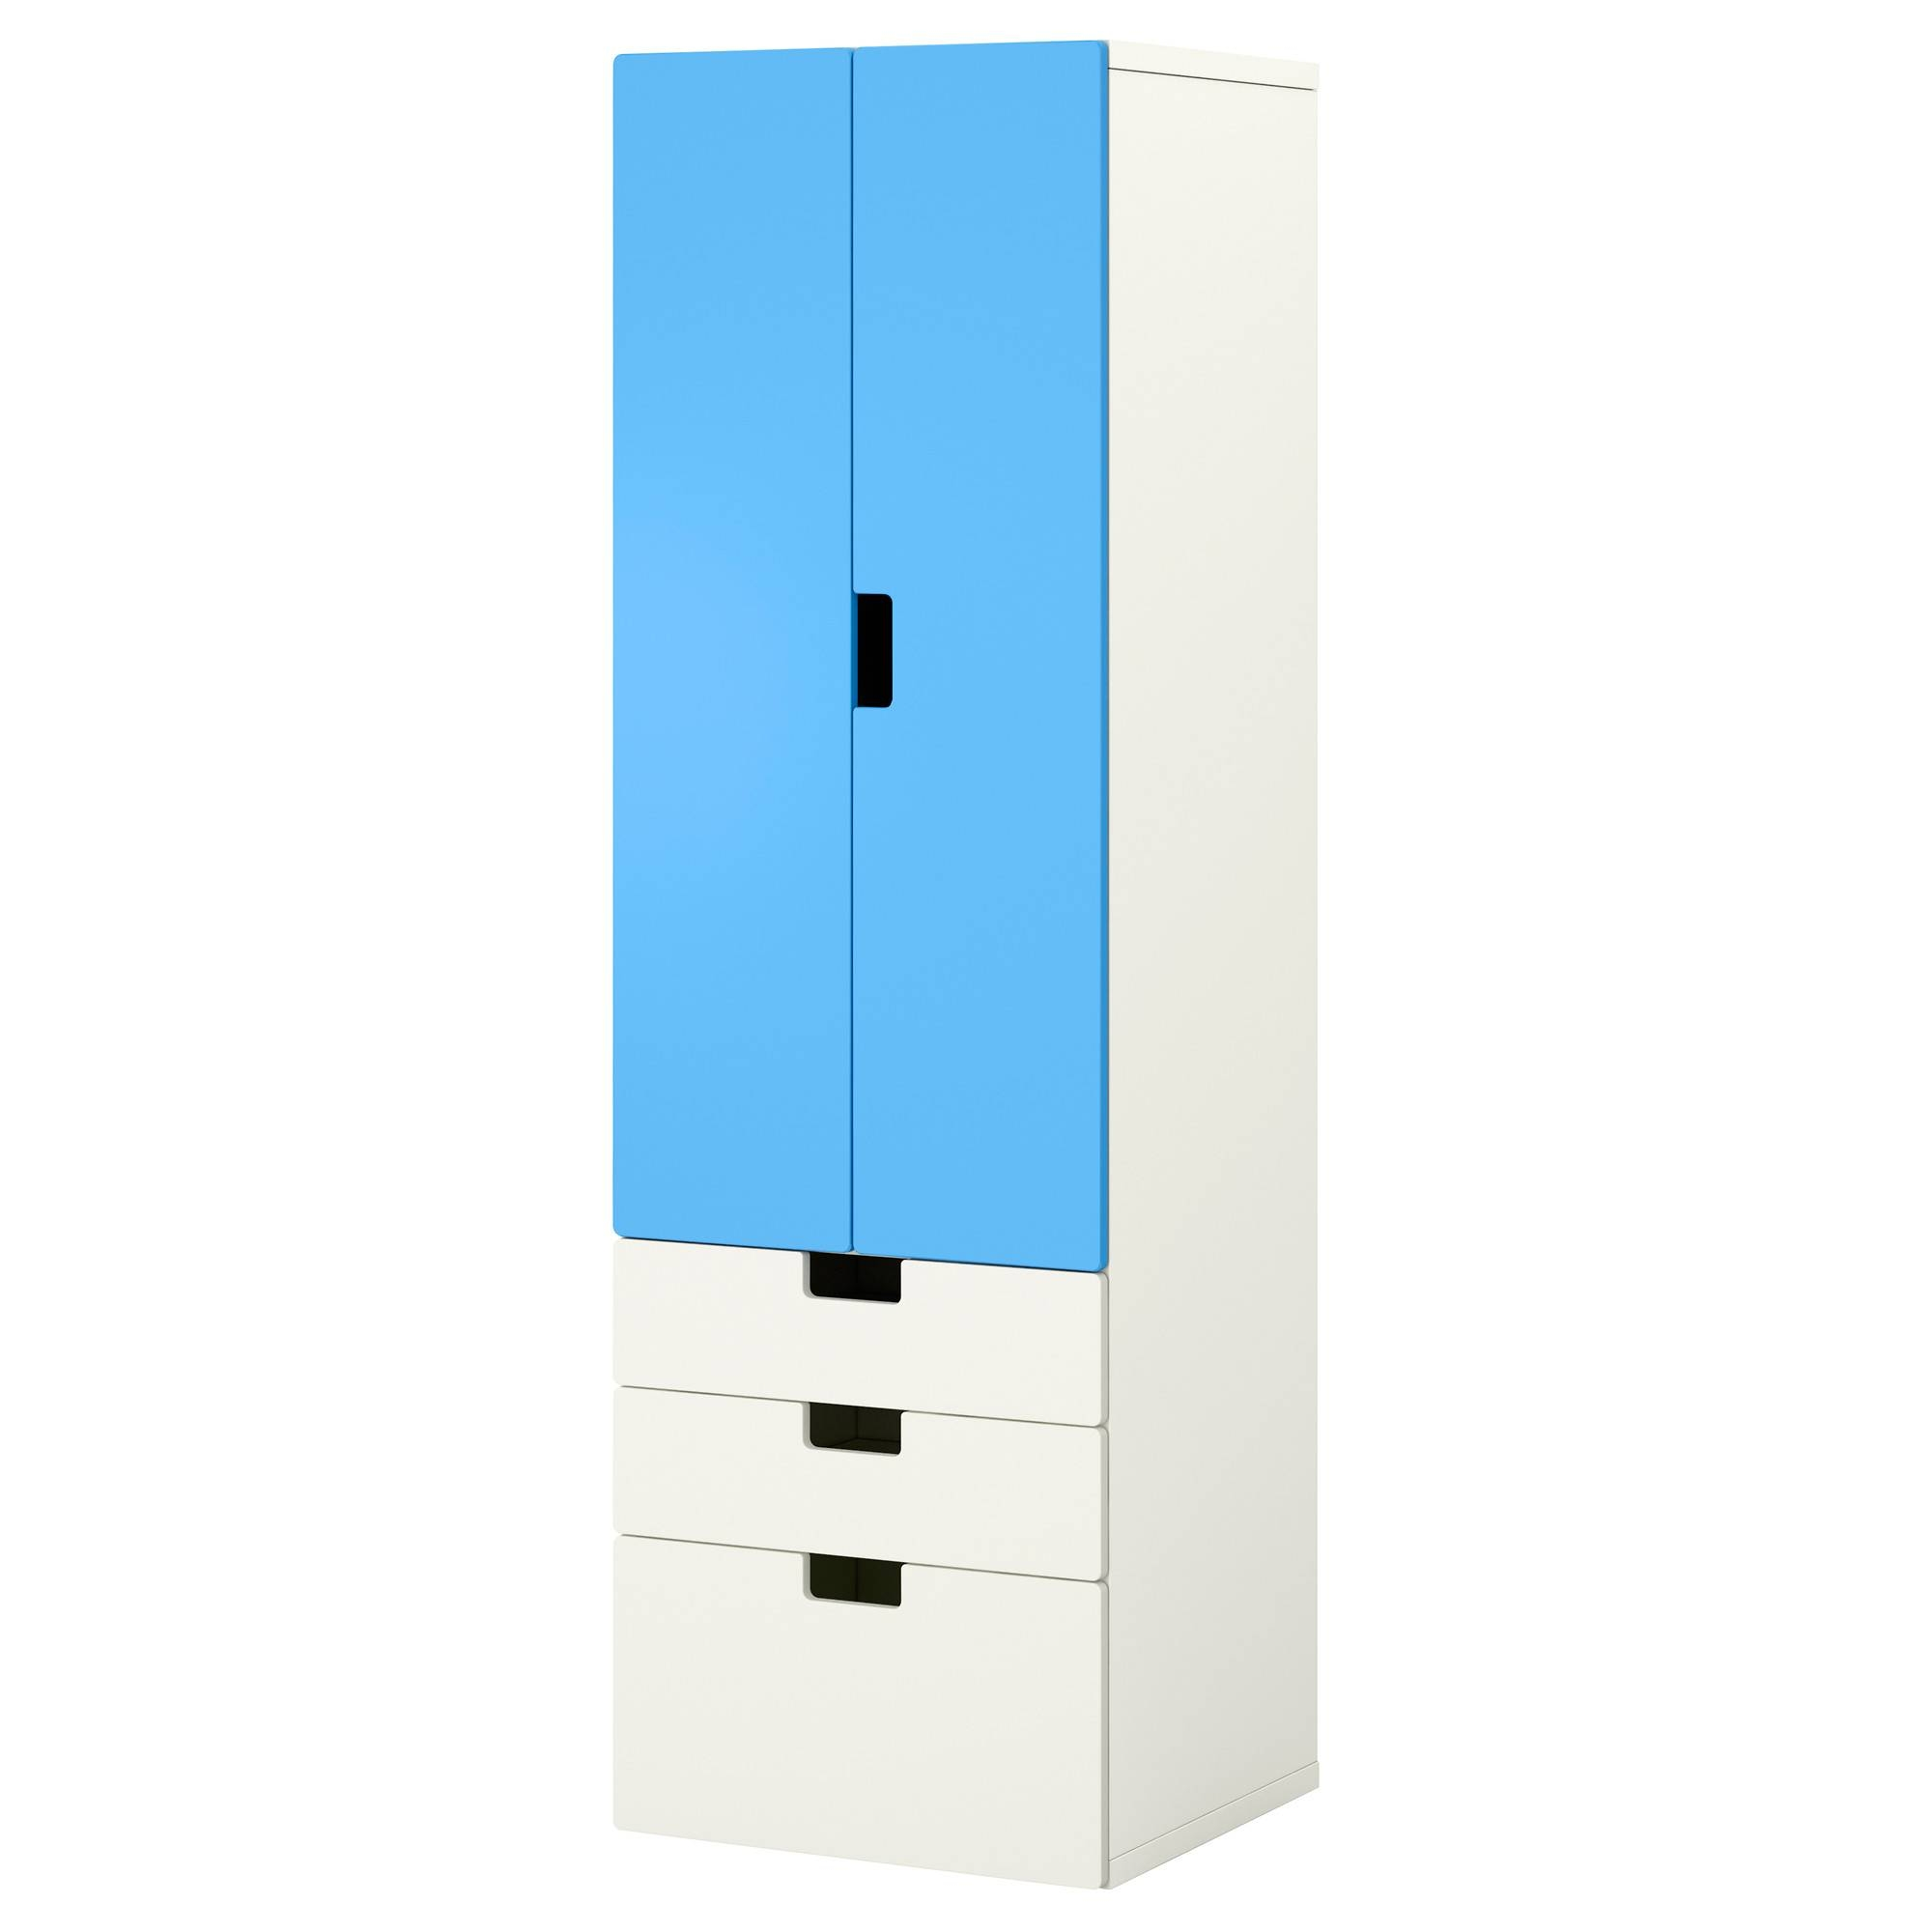 Stuva Storage Combination W Doors/drawers White/blue 60X50X192 Cm with Kids Wardrobes With Drawers (Image 11 of 15)